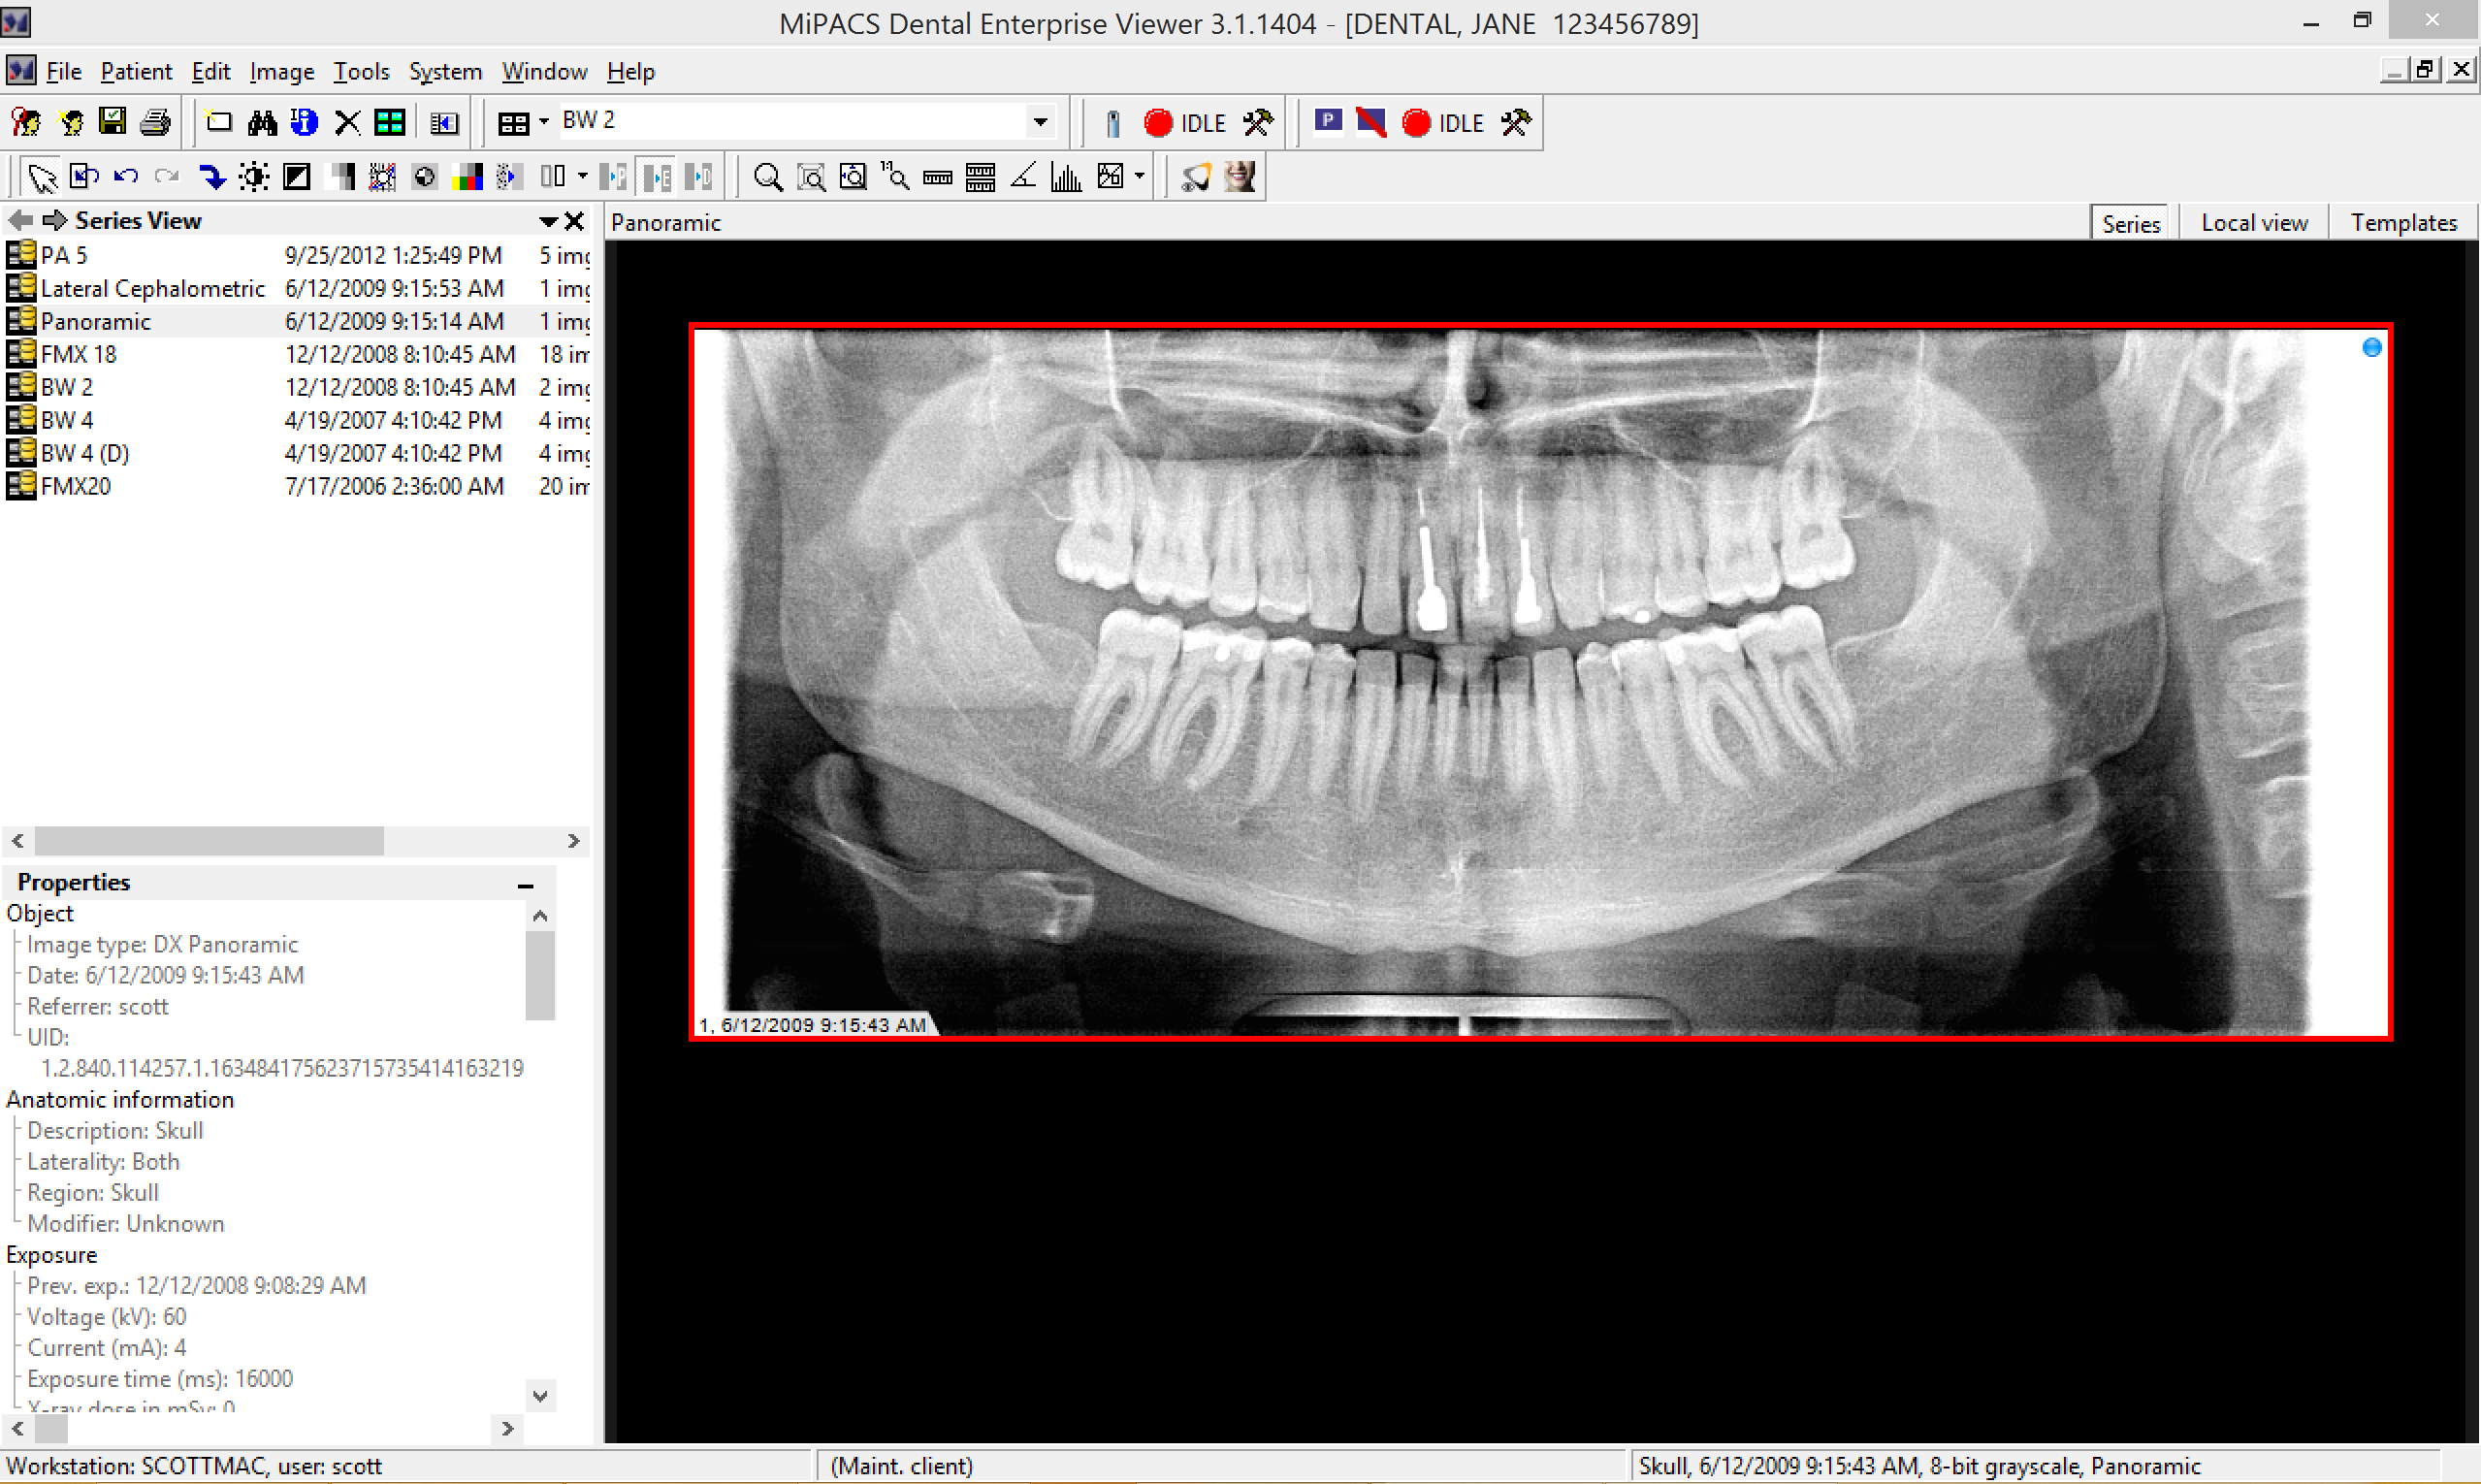 MiPACS Dental Enterprise Viewer - Medicor Imaging